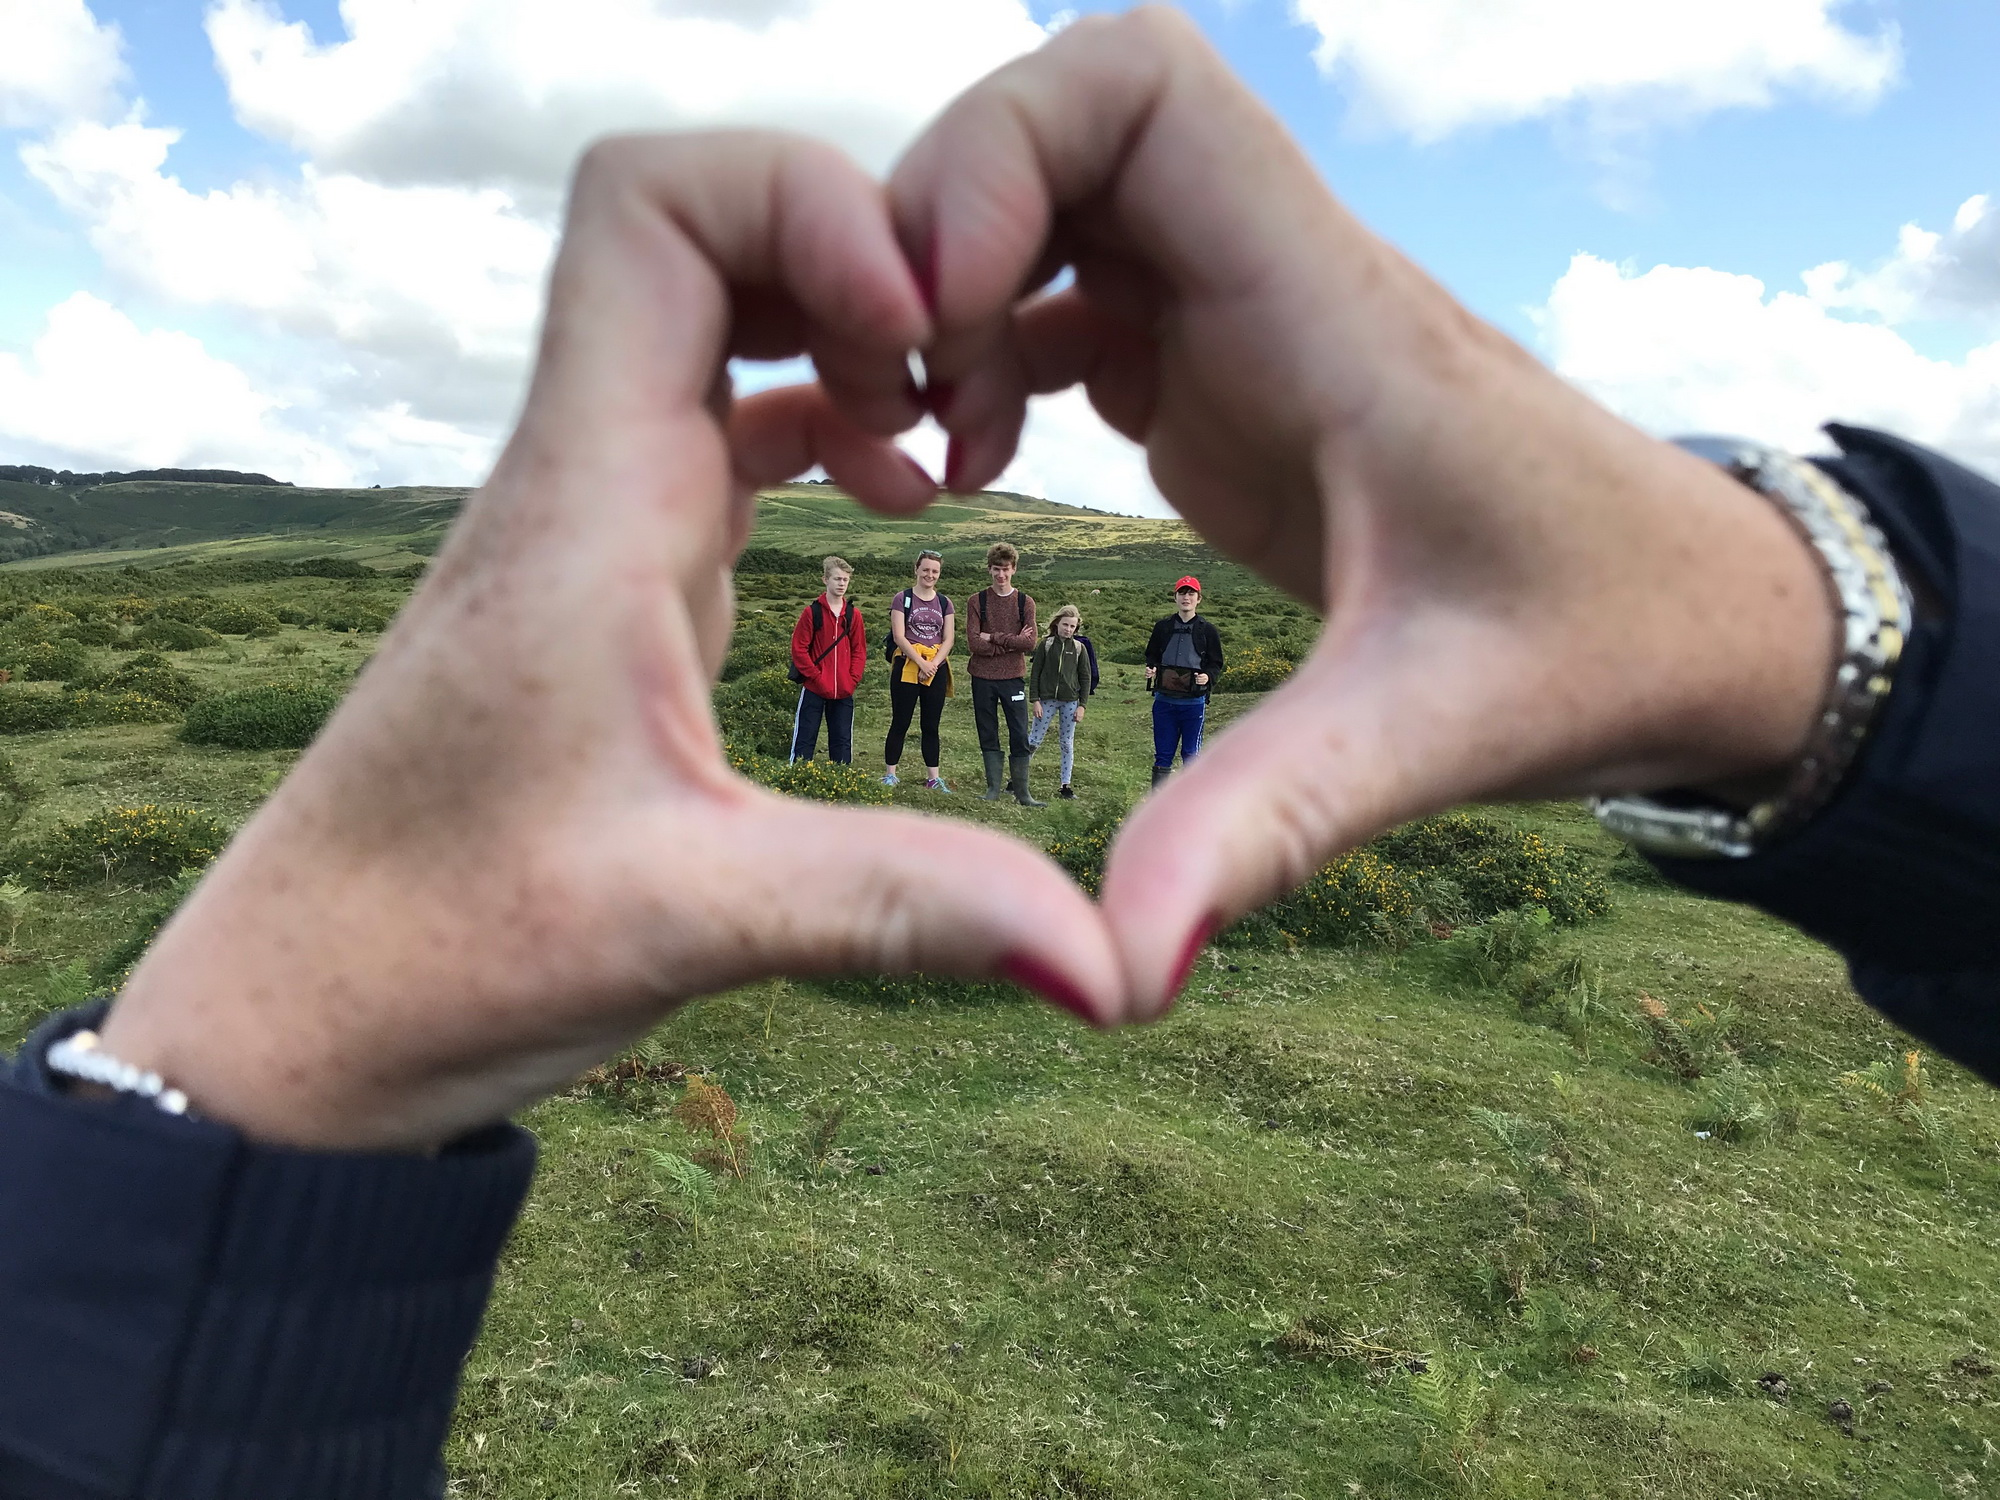 Hearts are being formed across the country in our most loved landscapes